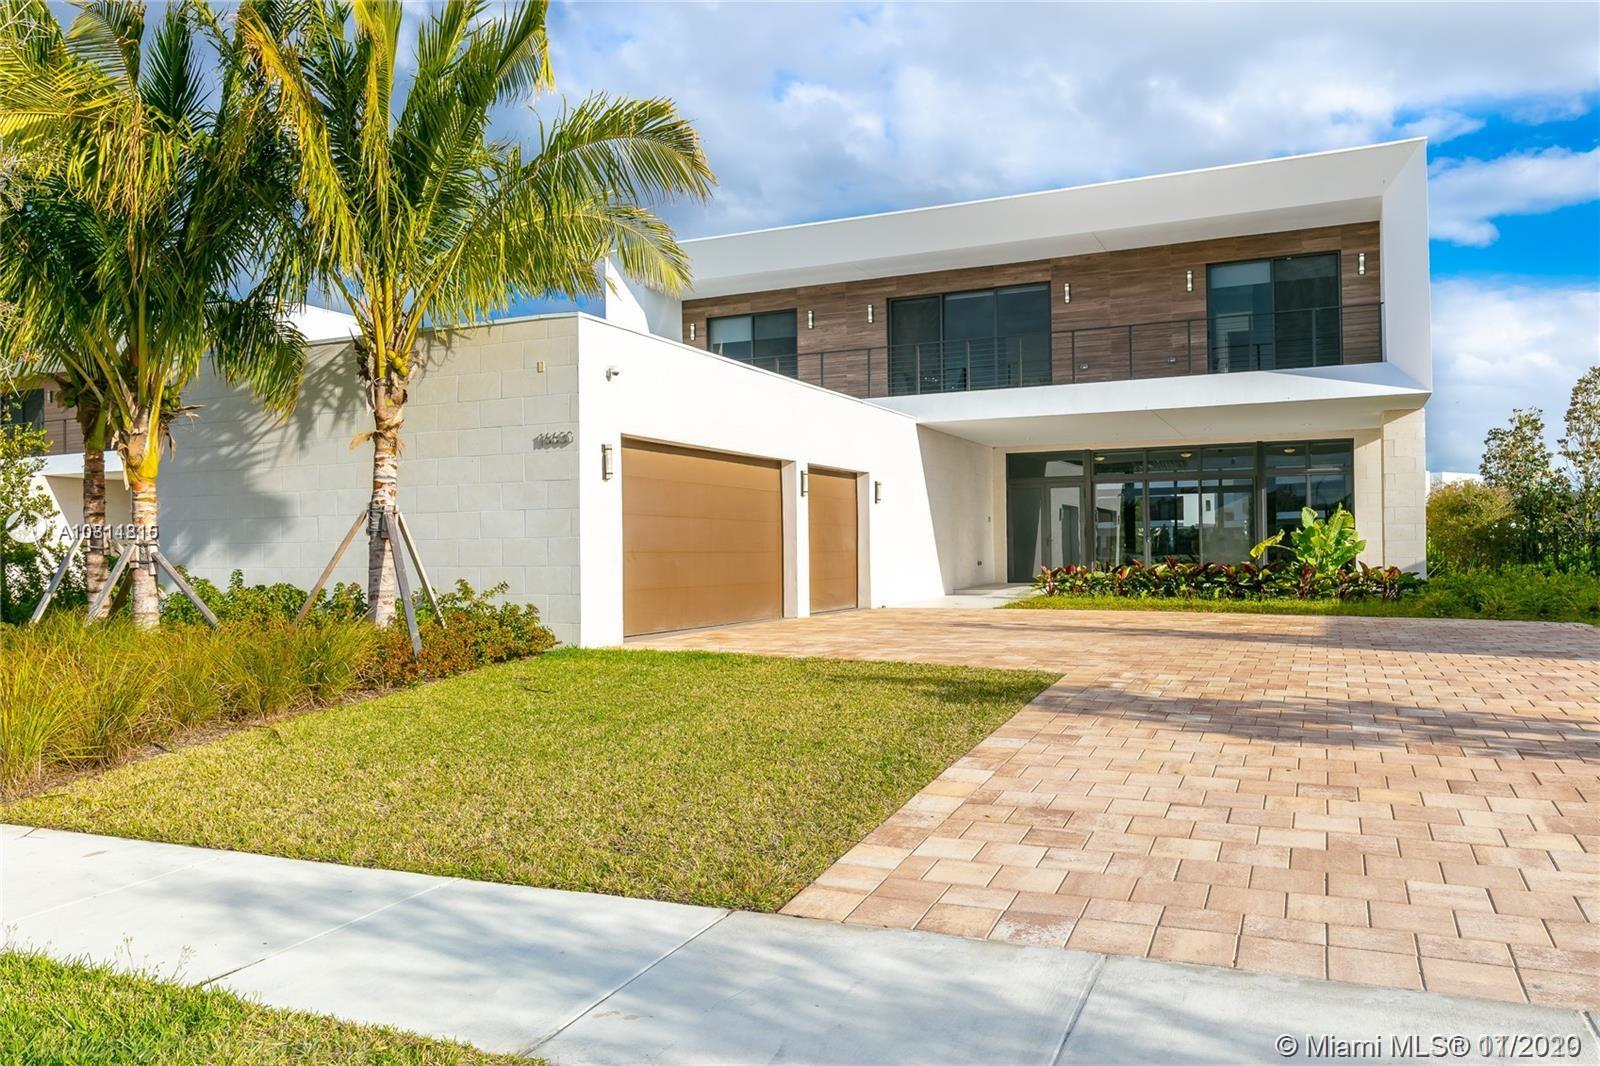 ABSOLUTELY STUNNING!!! CUSTOM BUILT HOME IN A SPECTACULAR MODERN SUBDIVISION: 5 BEDROOMS, 6/1 BATHROOMS PLUS AN OFFICE, MANY UPGRADES WITH WATER VIEWS. KITCHEN WITH AN ISLAND, WHITE CABINETS AND SUBZERO FRIDGE. MOTORIZED. THIS HOME IS A MUST SEE!